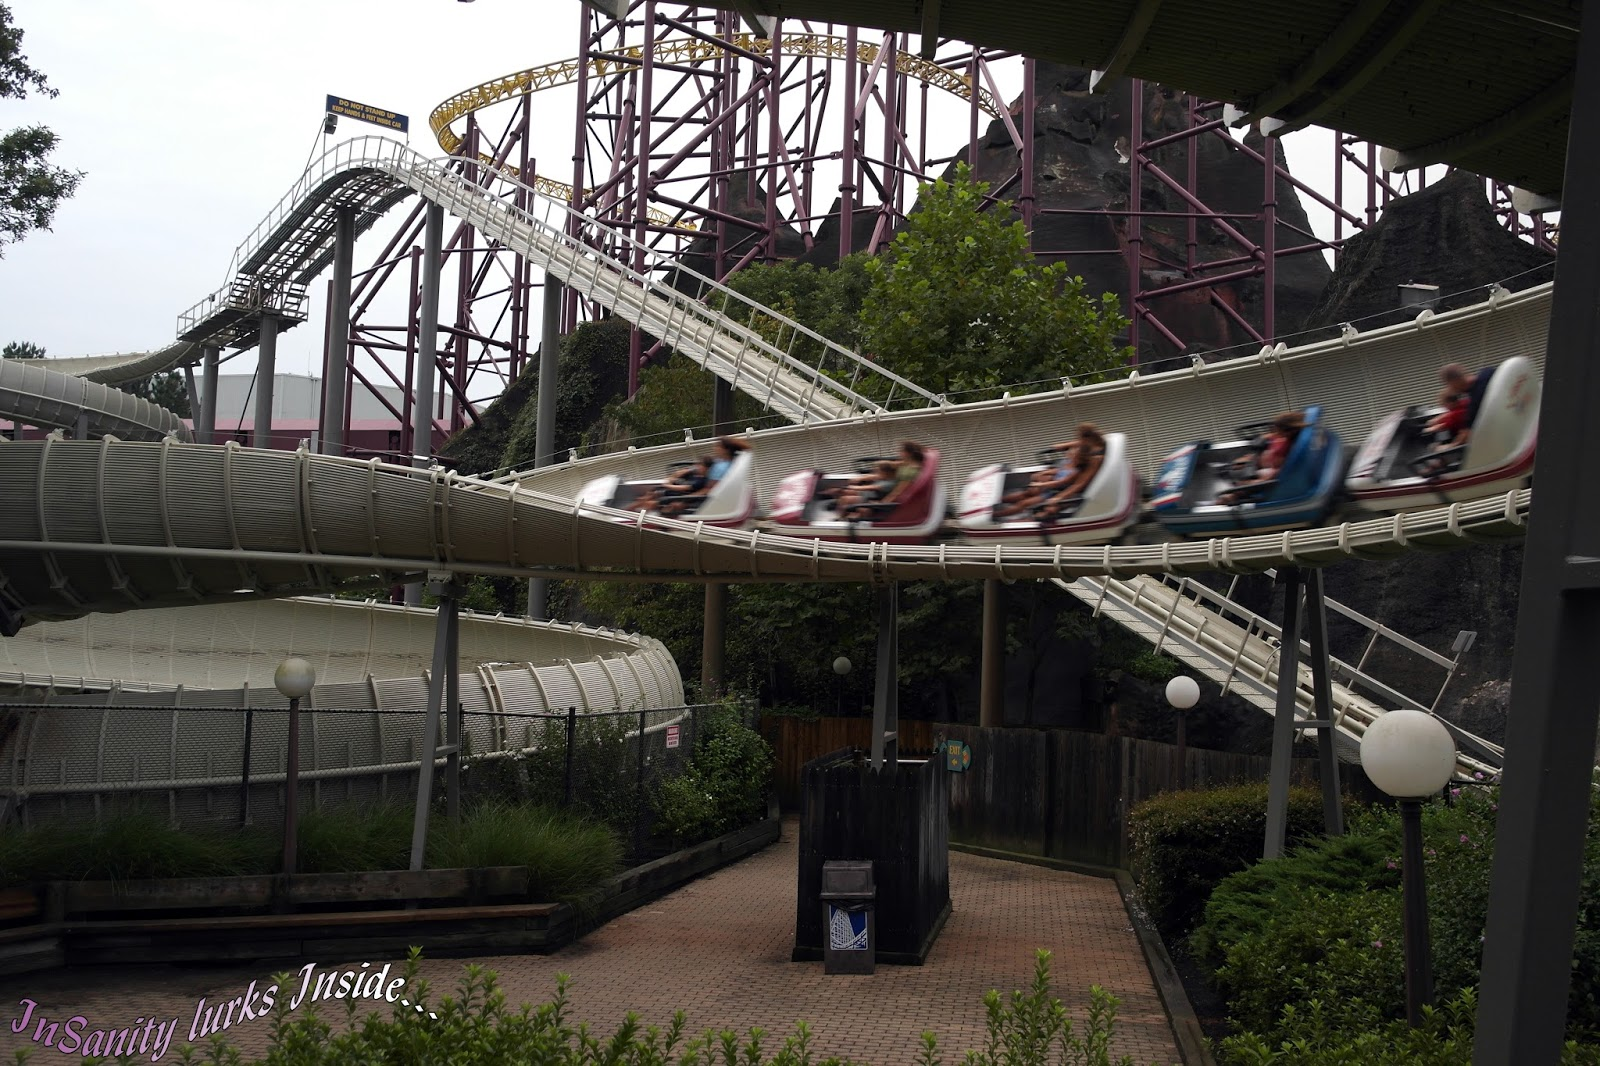 InSanity lurks Inside: Park Review- Kings Dominion